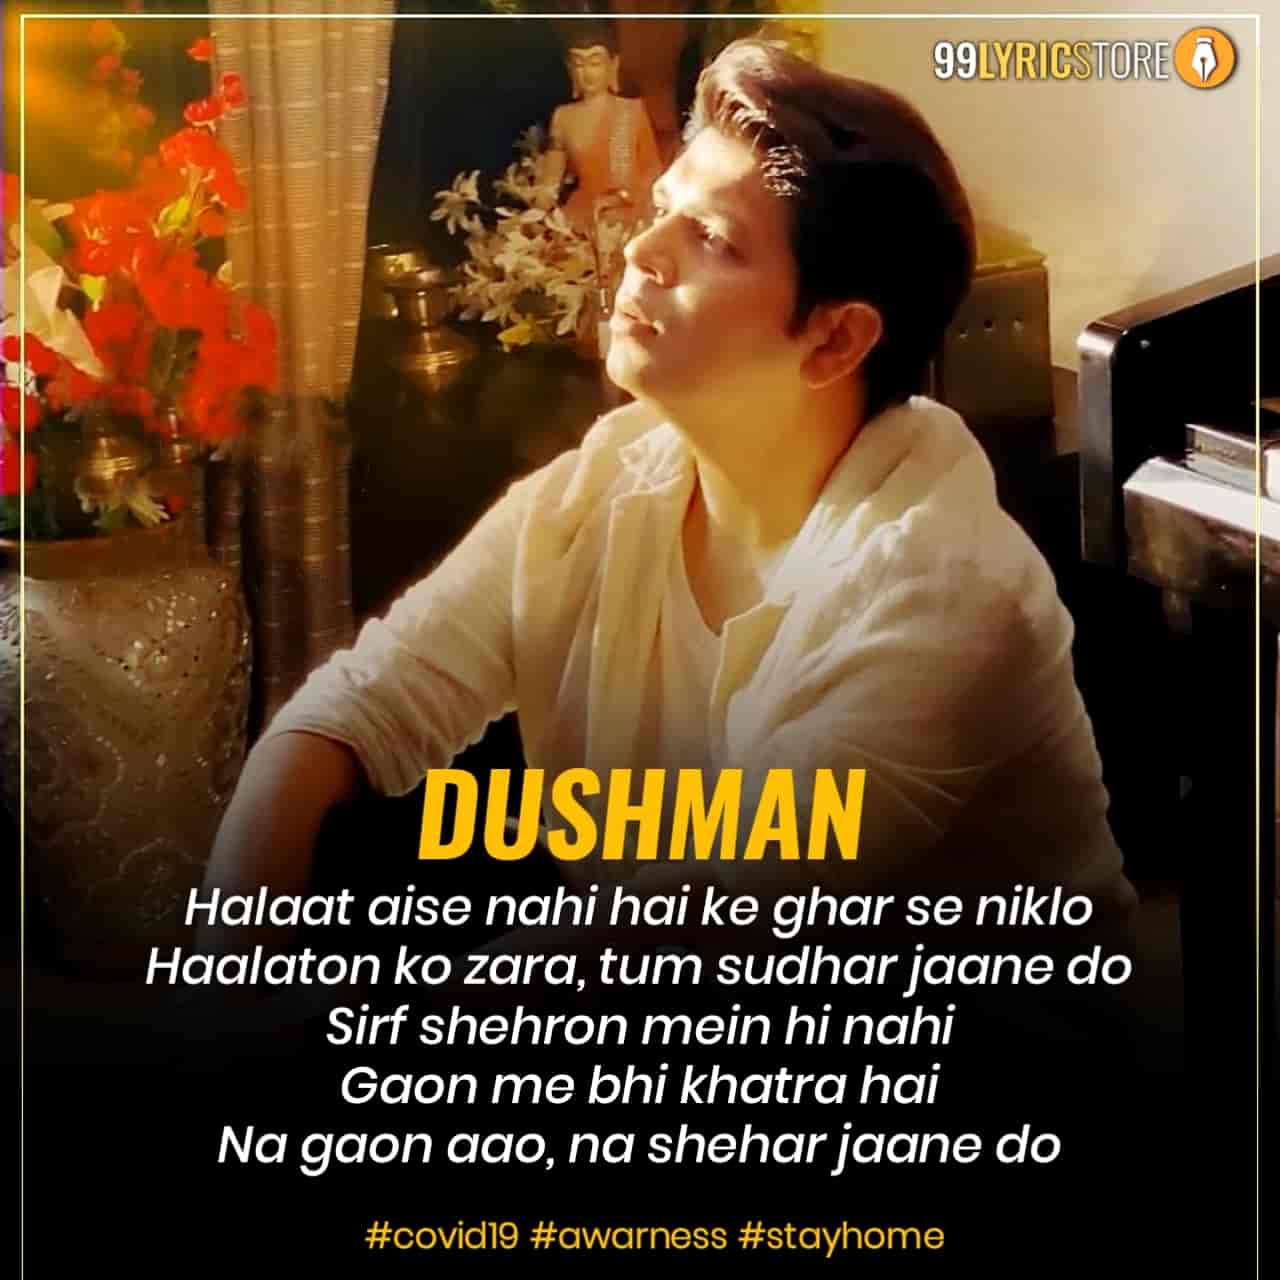 Dushman Lyrics :- Now artist Ankit Tiwari back with a beautiful track Dushman which has given beautiful messege to everyone how we avoiding from this global pandemic virus Covid 19 virus. Ankit Tiwari called Dushman to Covid 19 virus that's why he titled this song Dushman. This song sung and composed by Ankit Tiwari while this beautiful track Dushman lyrics has penned by Prince Dubey. Video of this song has given by Pallavi Tiwari. This song is presented by Ankit Tiwari official label.